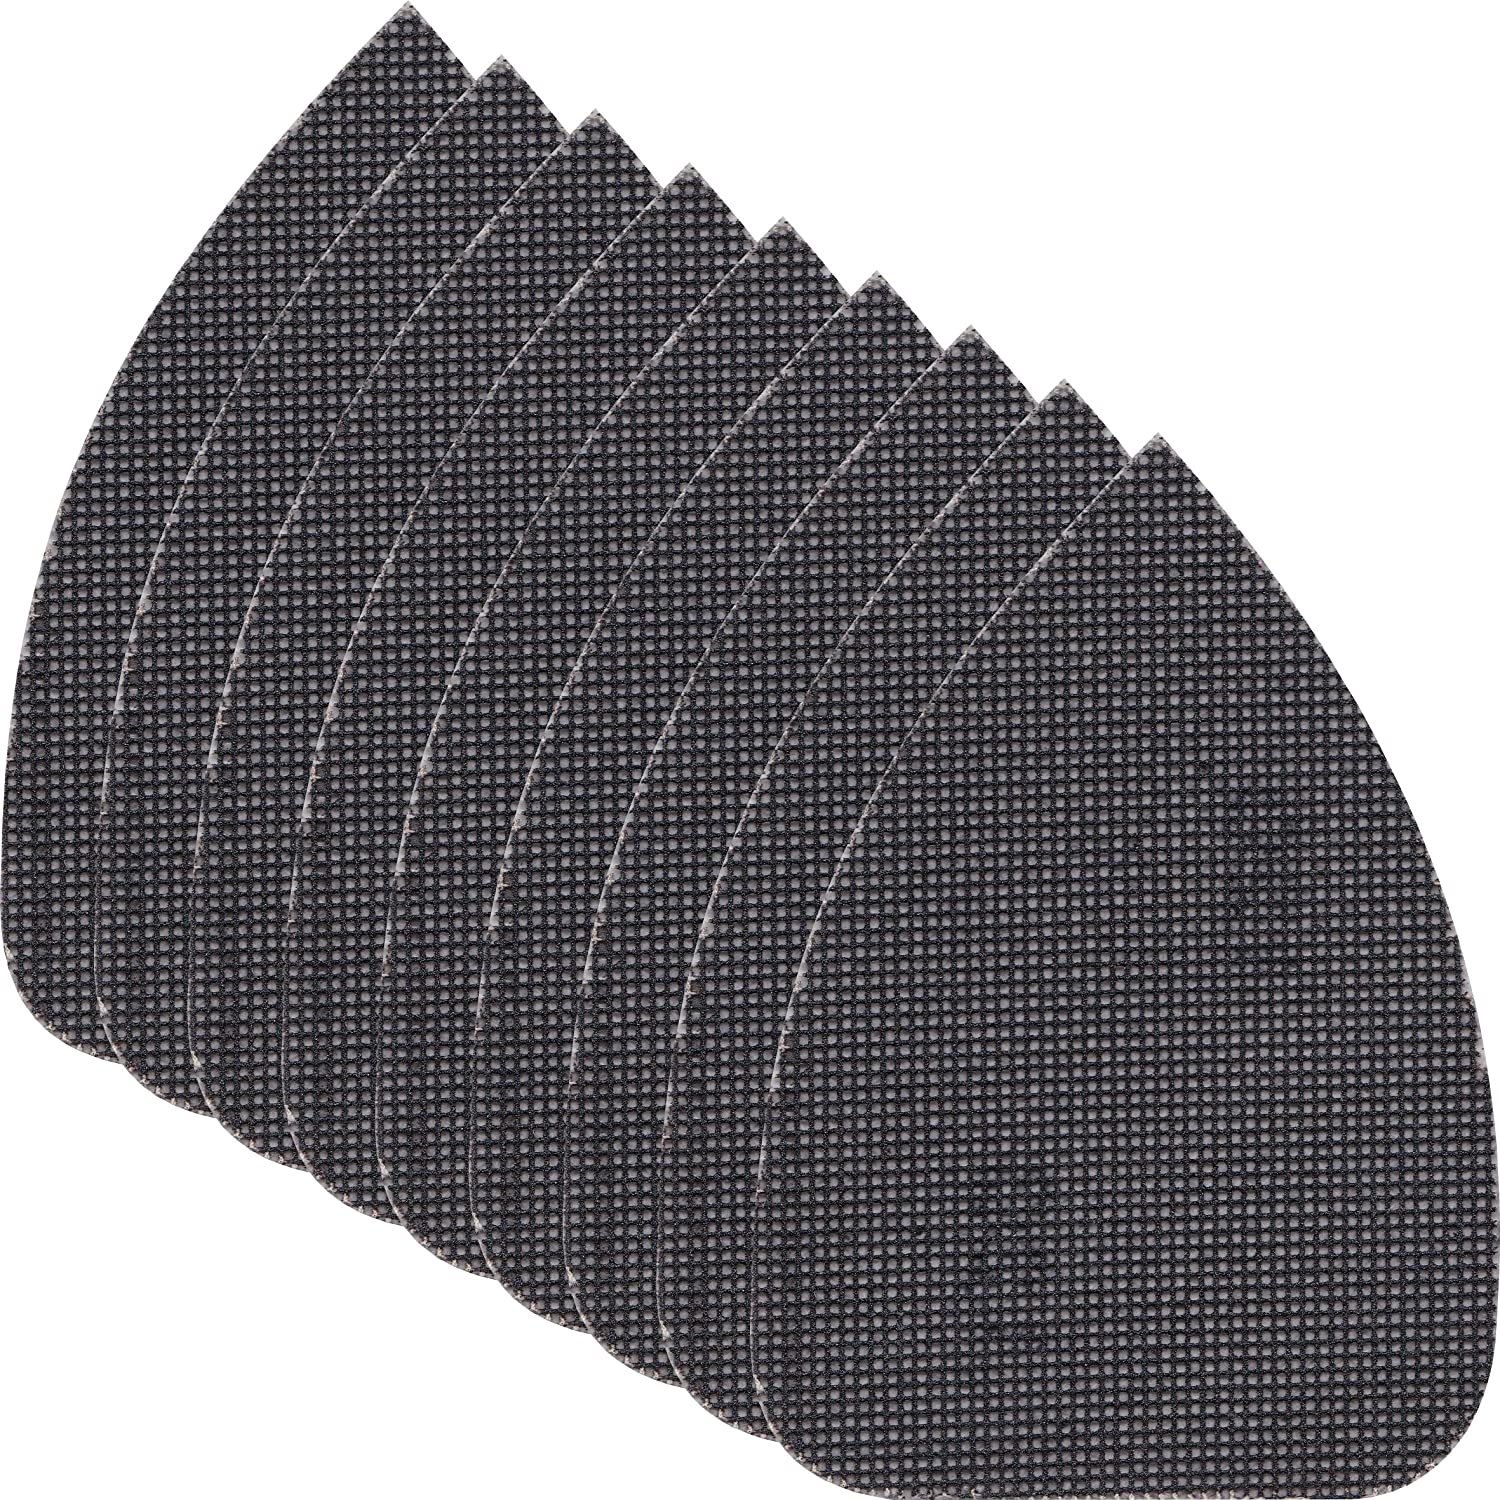 Premium Long Lasting Replacement Mesh Sanding Sandpaper Sheets for Black & Decker KA2500K Mouse (3, 240G) Stanley Black & Decker